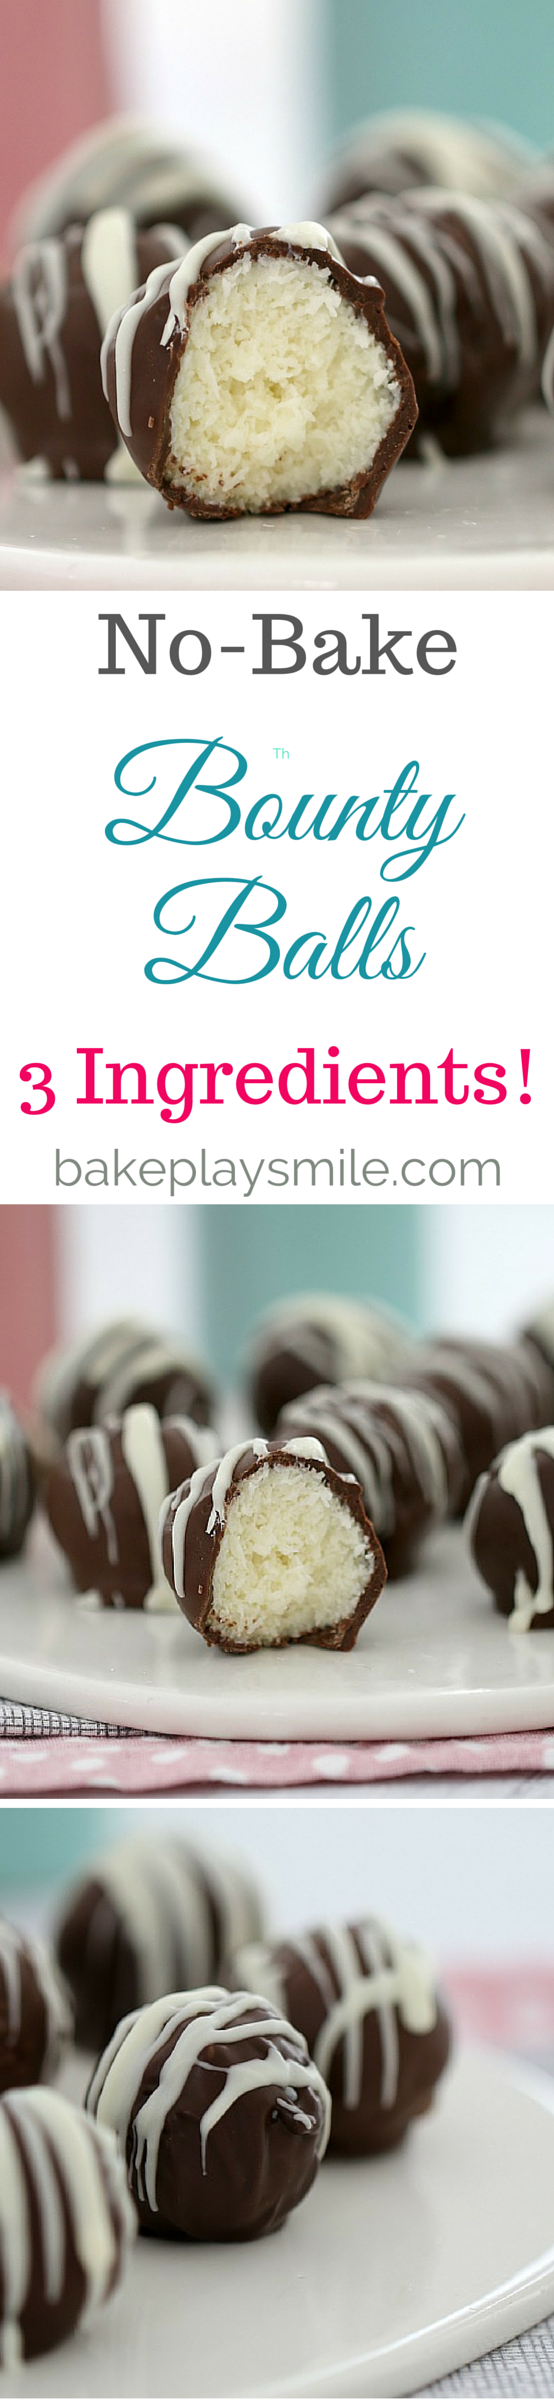 No Bake 3 Ingredient Bounty Balls Bake Play Smile Desserts Easy Chocolate Desserts Sweet Recipes